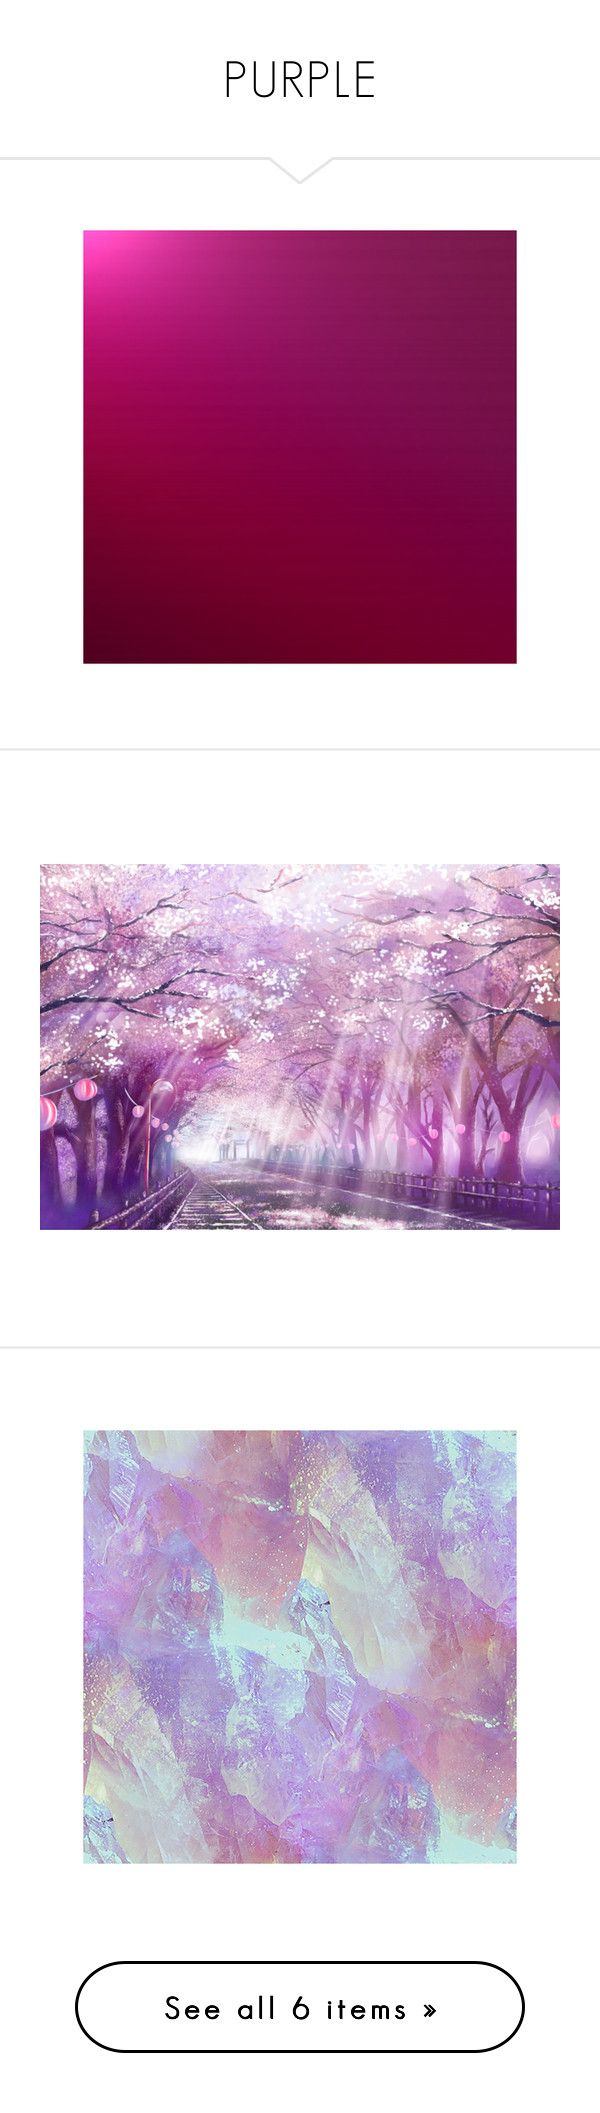 """""""PURPLE"""" by sensitiveheart ❤ liked on Polyvore featuring backgrounds, colors, effects, frames, pink, pictures, photos, fillers, purple and patterns"""